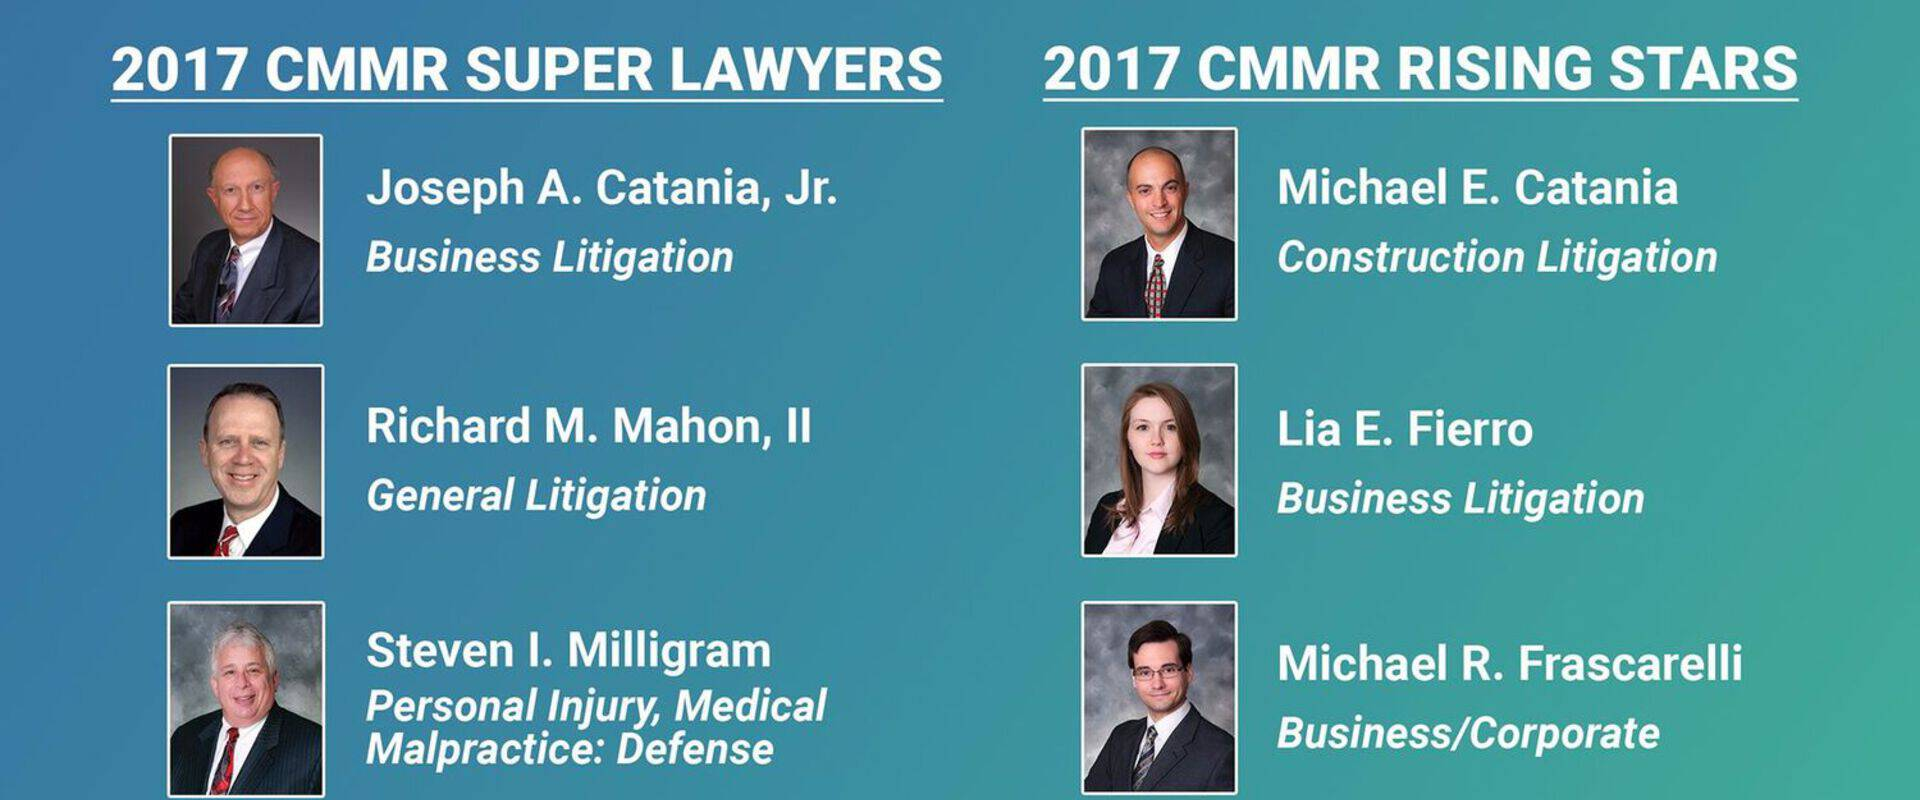 CMR congratulates its 2017 Super Lawyers and Rising Stars